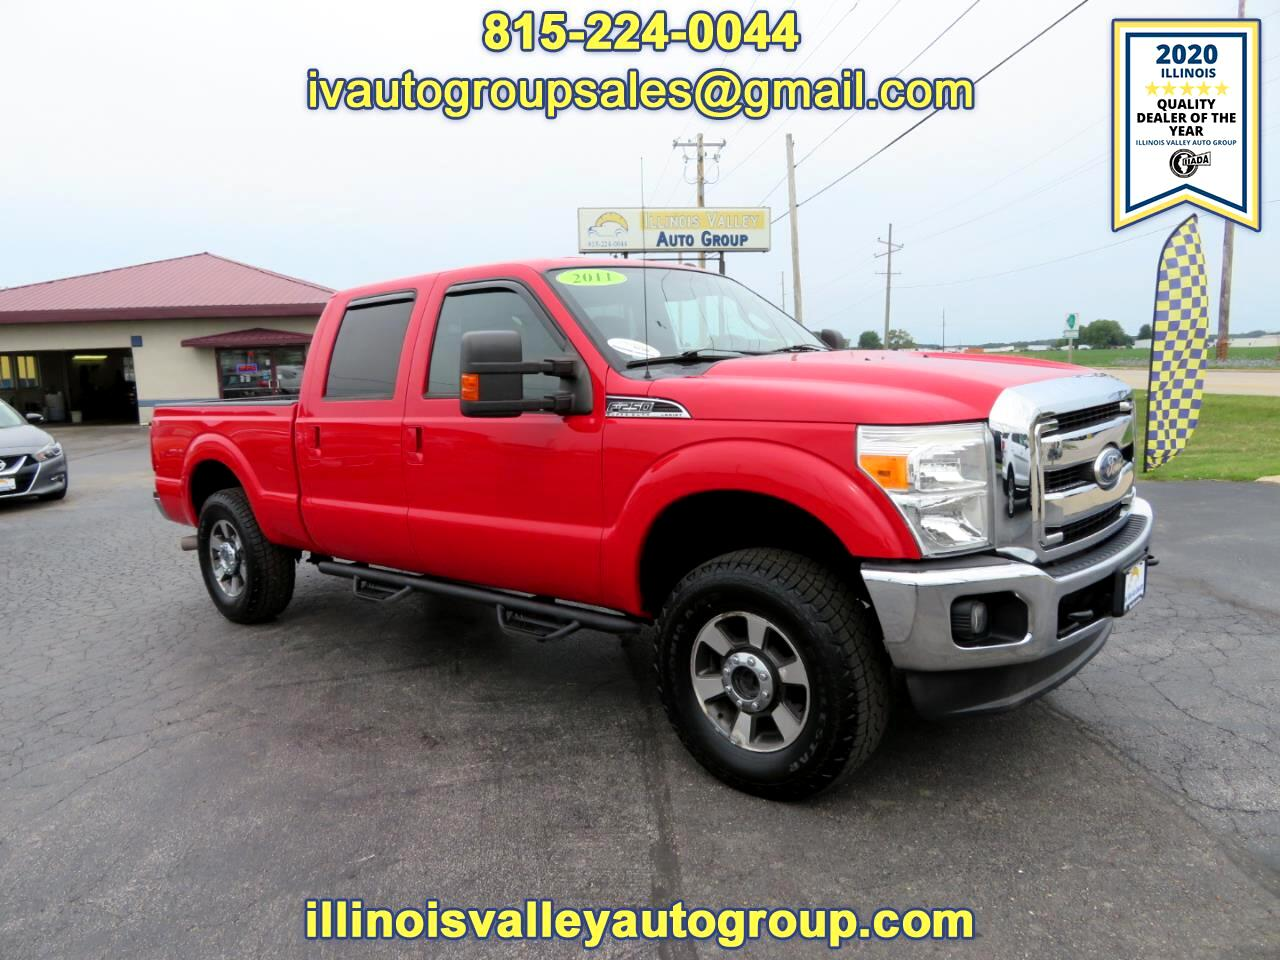 Ford F-250 SD Lariat Crew Cab Short Bed 4WD 2011